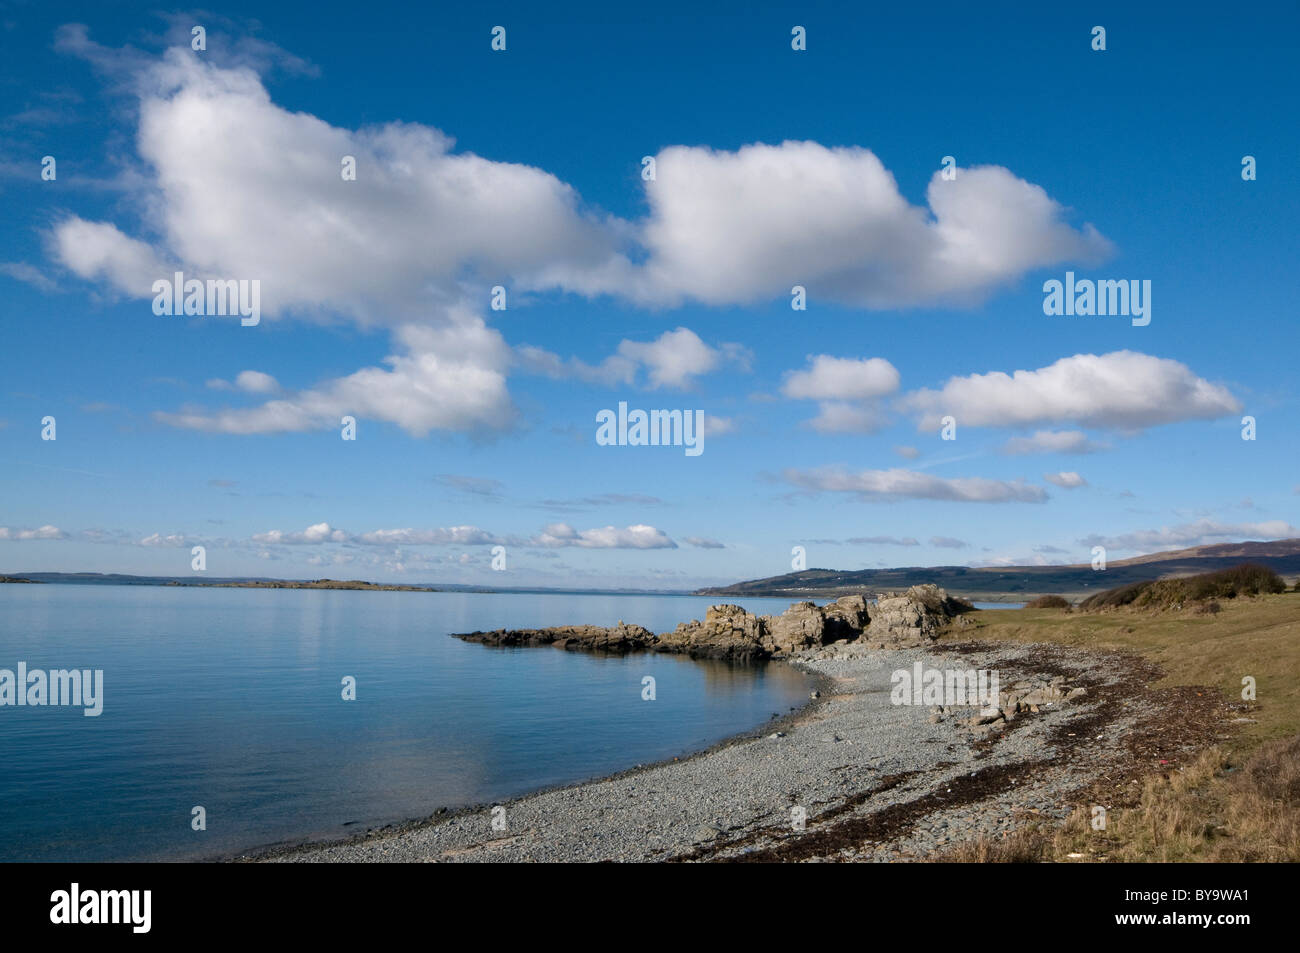 Carrick Shore with rocky spit and big blue sky, Galloway and Fleet Bay - Stock Image